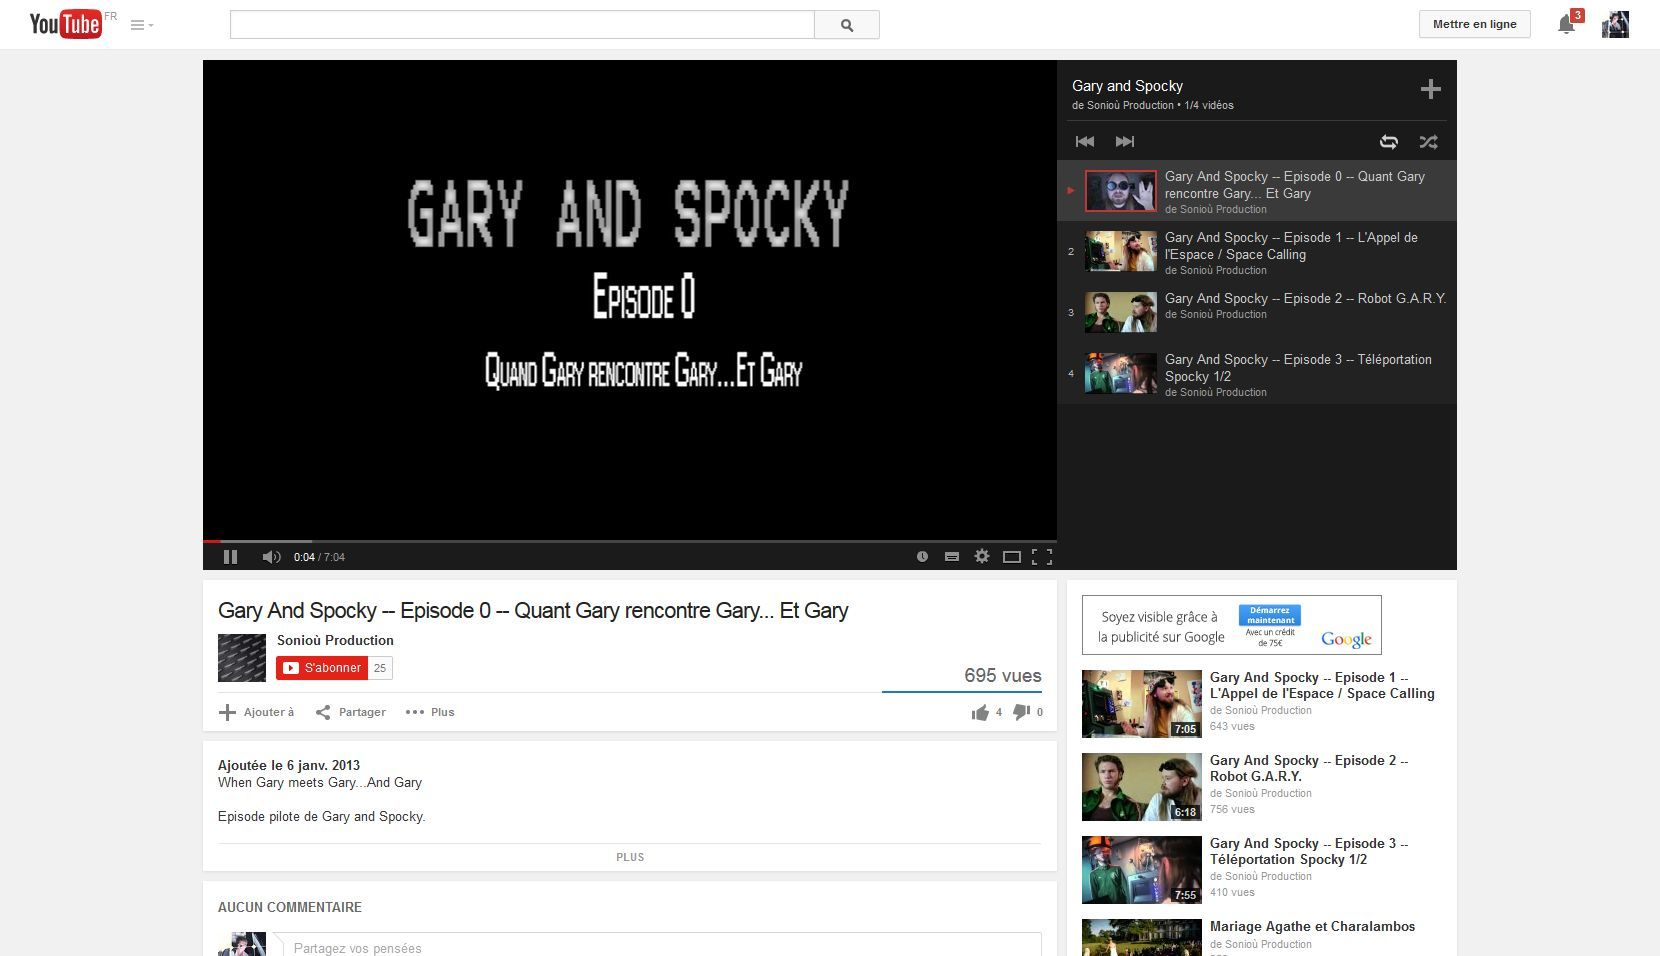 Gary and Spocky